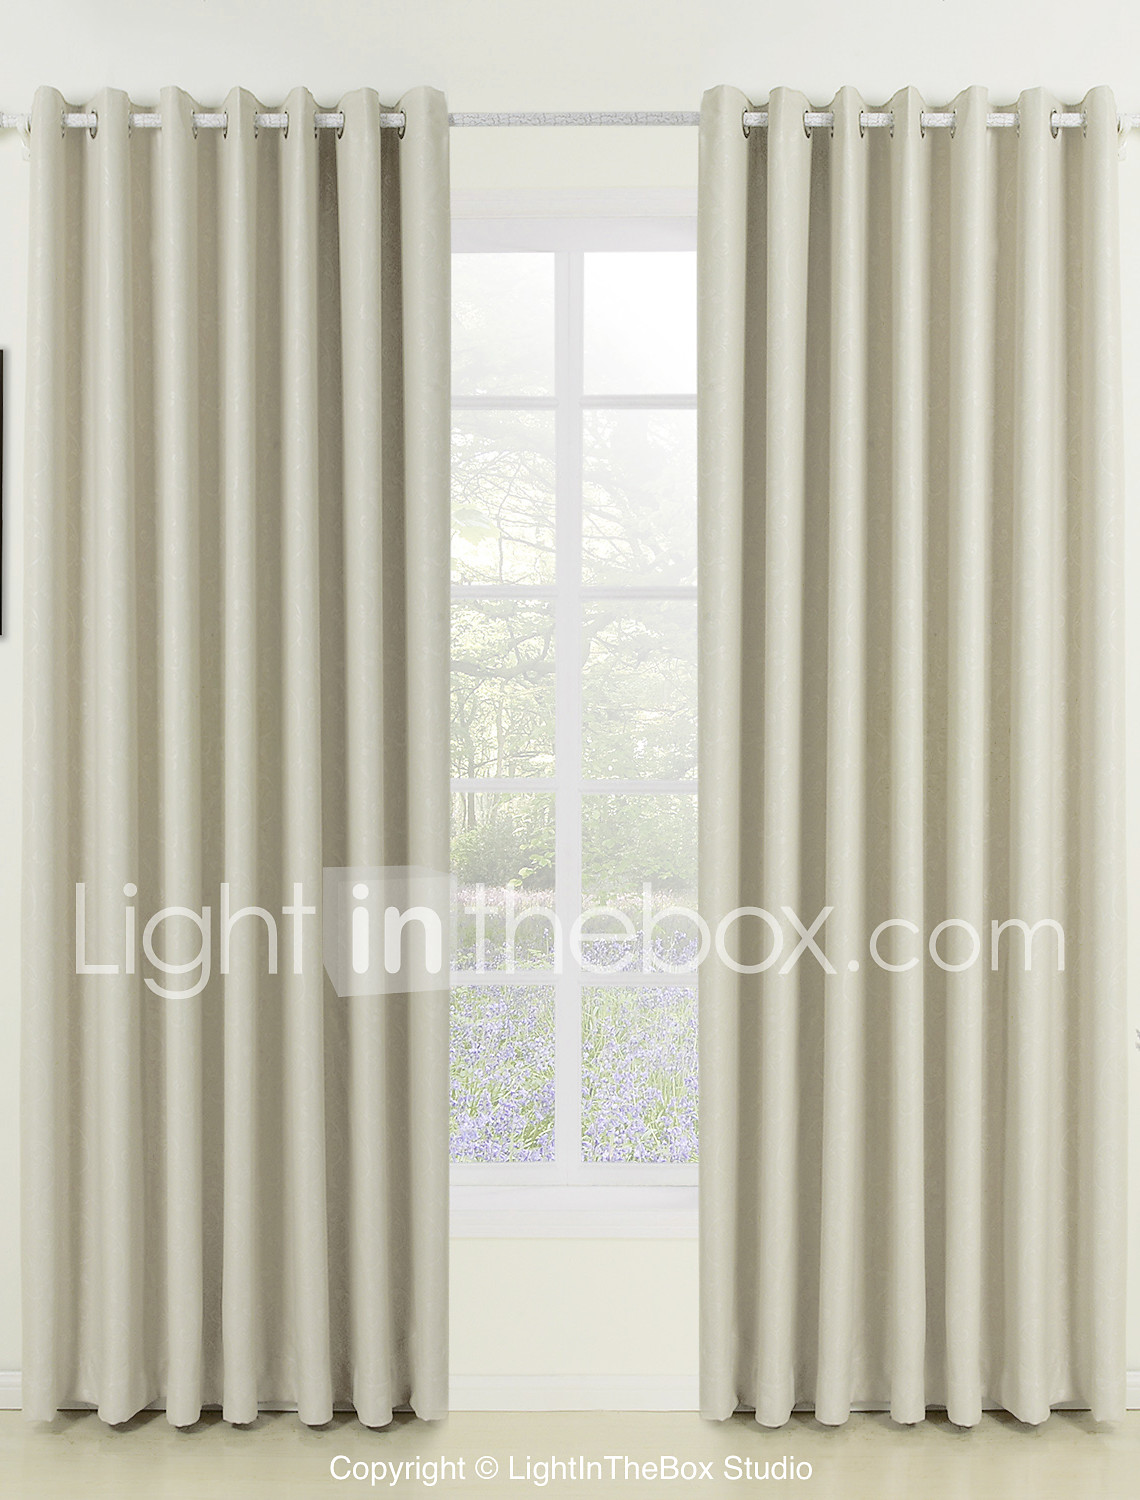 36 Inch Room Darkening Curtains Custom Made Room Darkening Curtains Drapes Two Panels 2 39w70